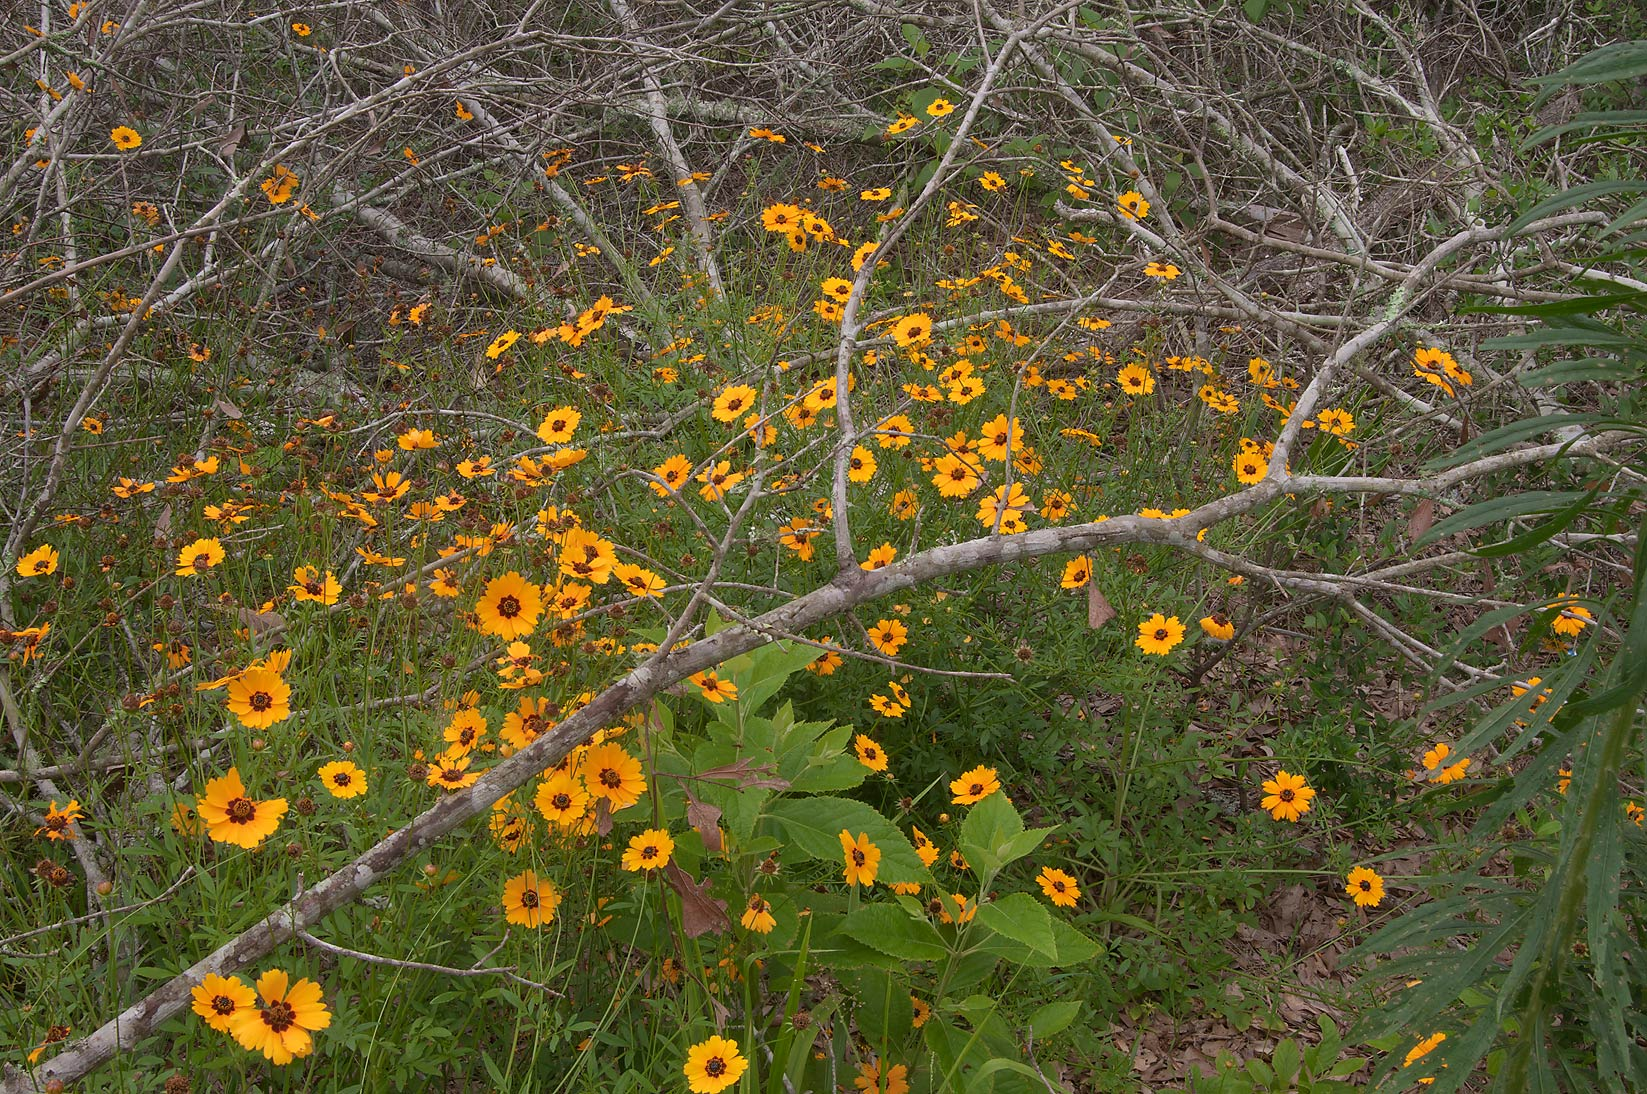 Coreopsis under fallen dry branches in Lick Creek Park. College Station, Texas